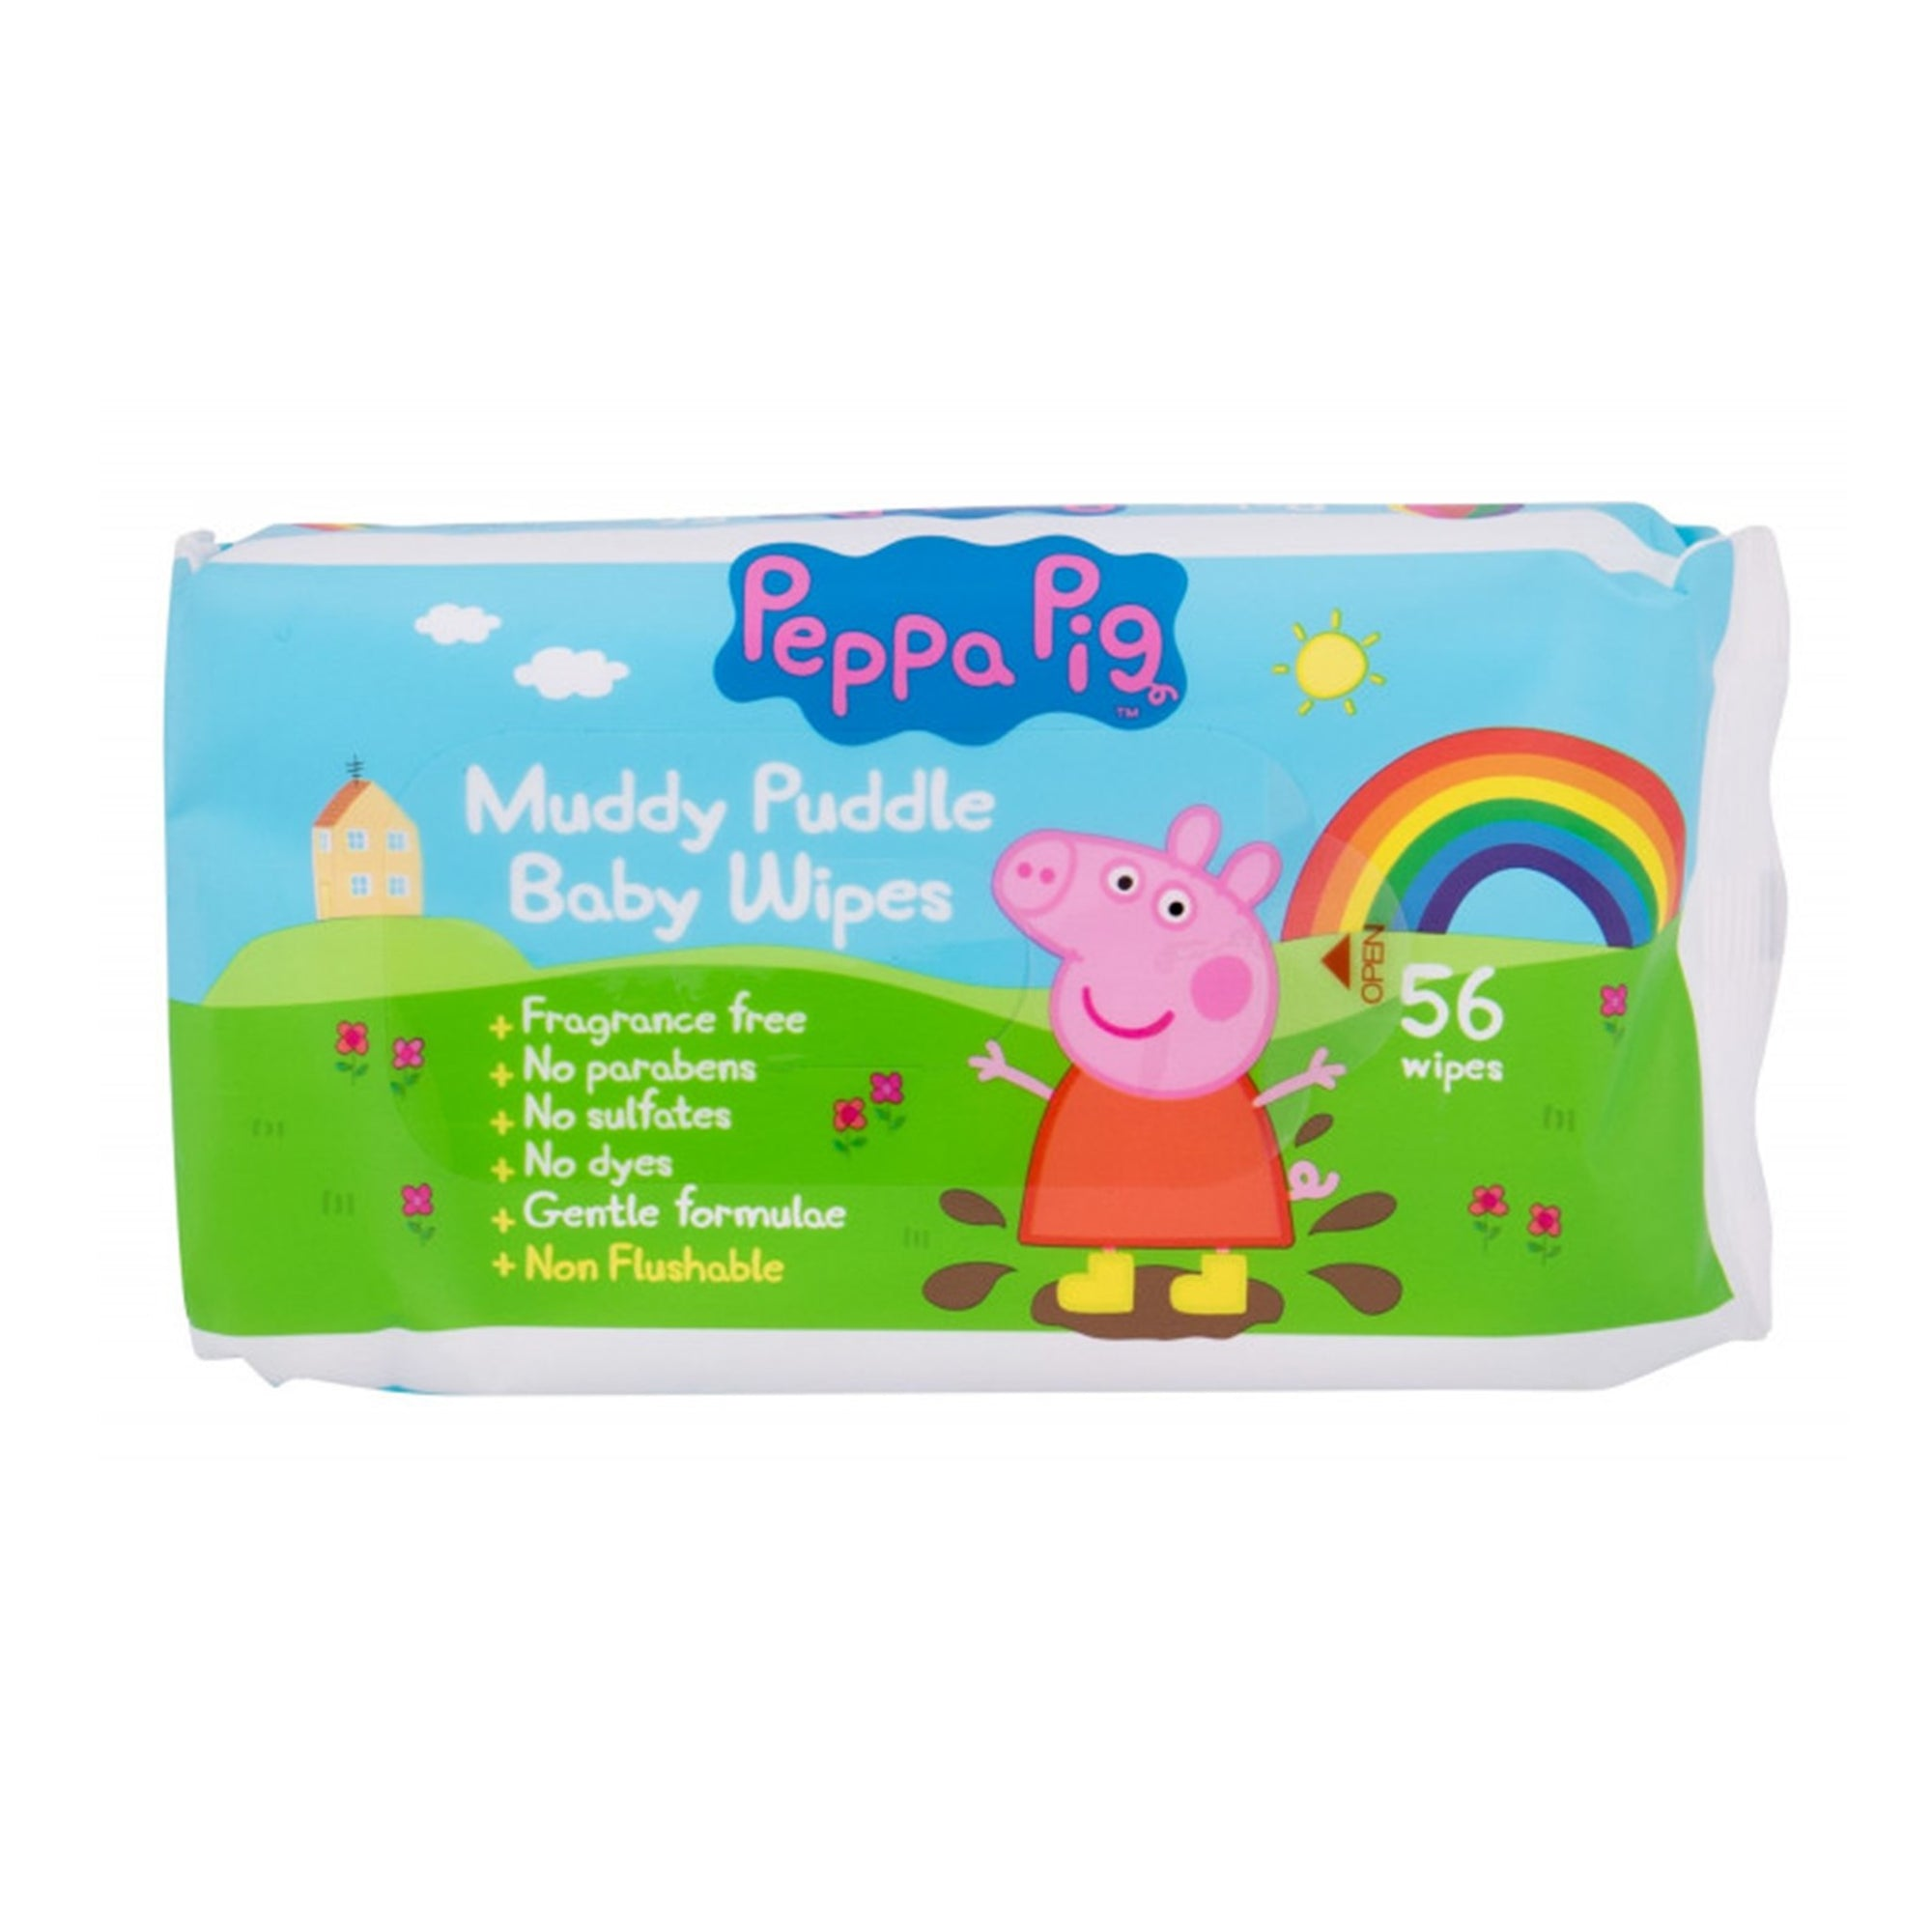 Peppa Pig Baby Wipes 56Pk